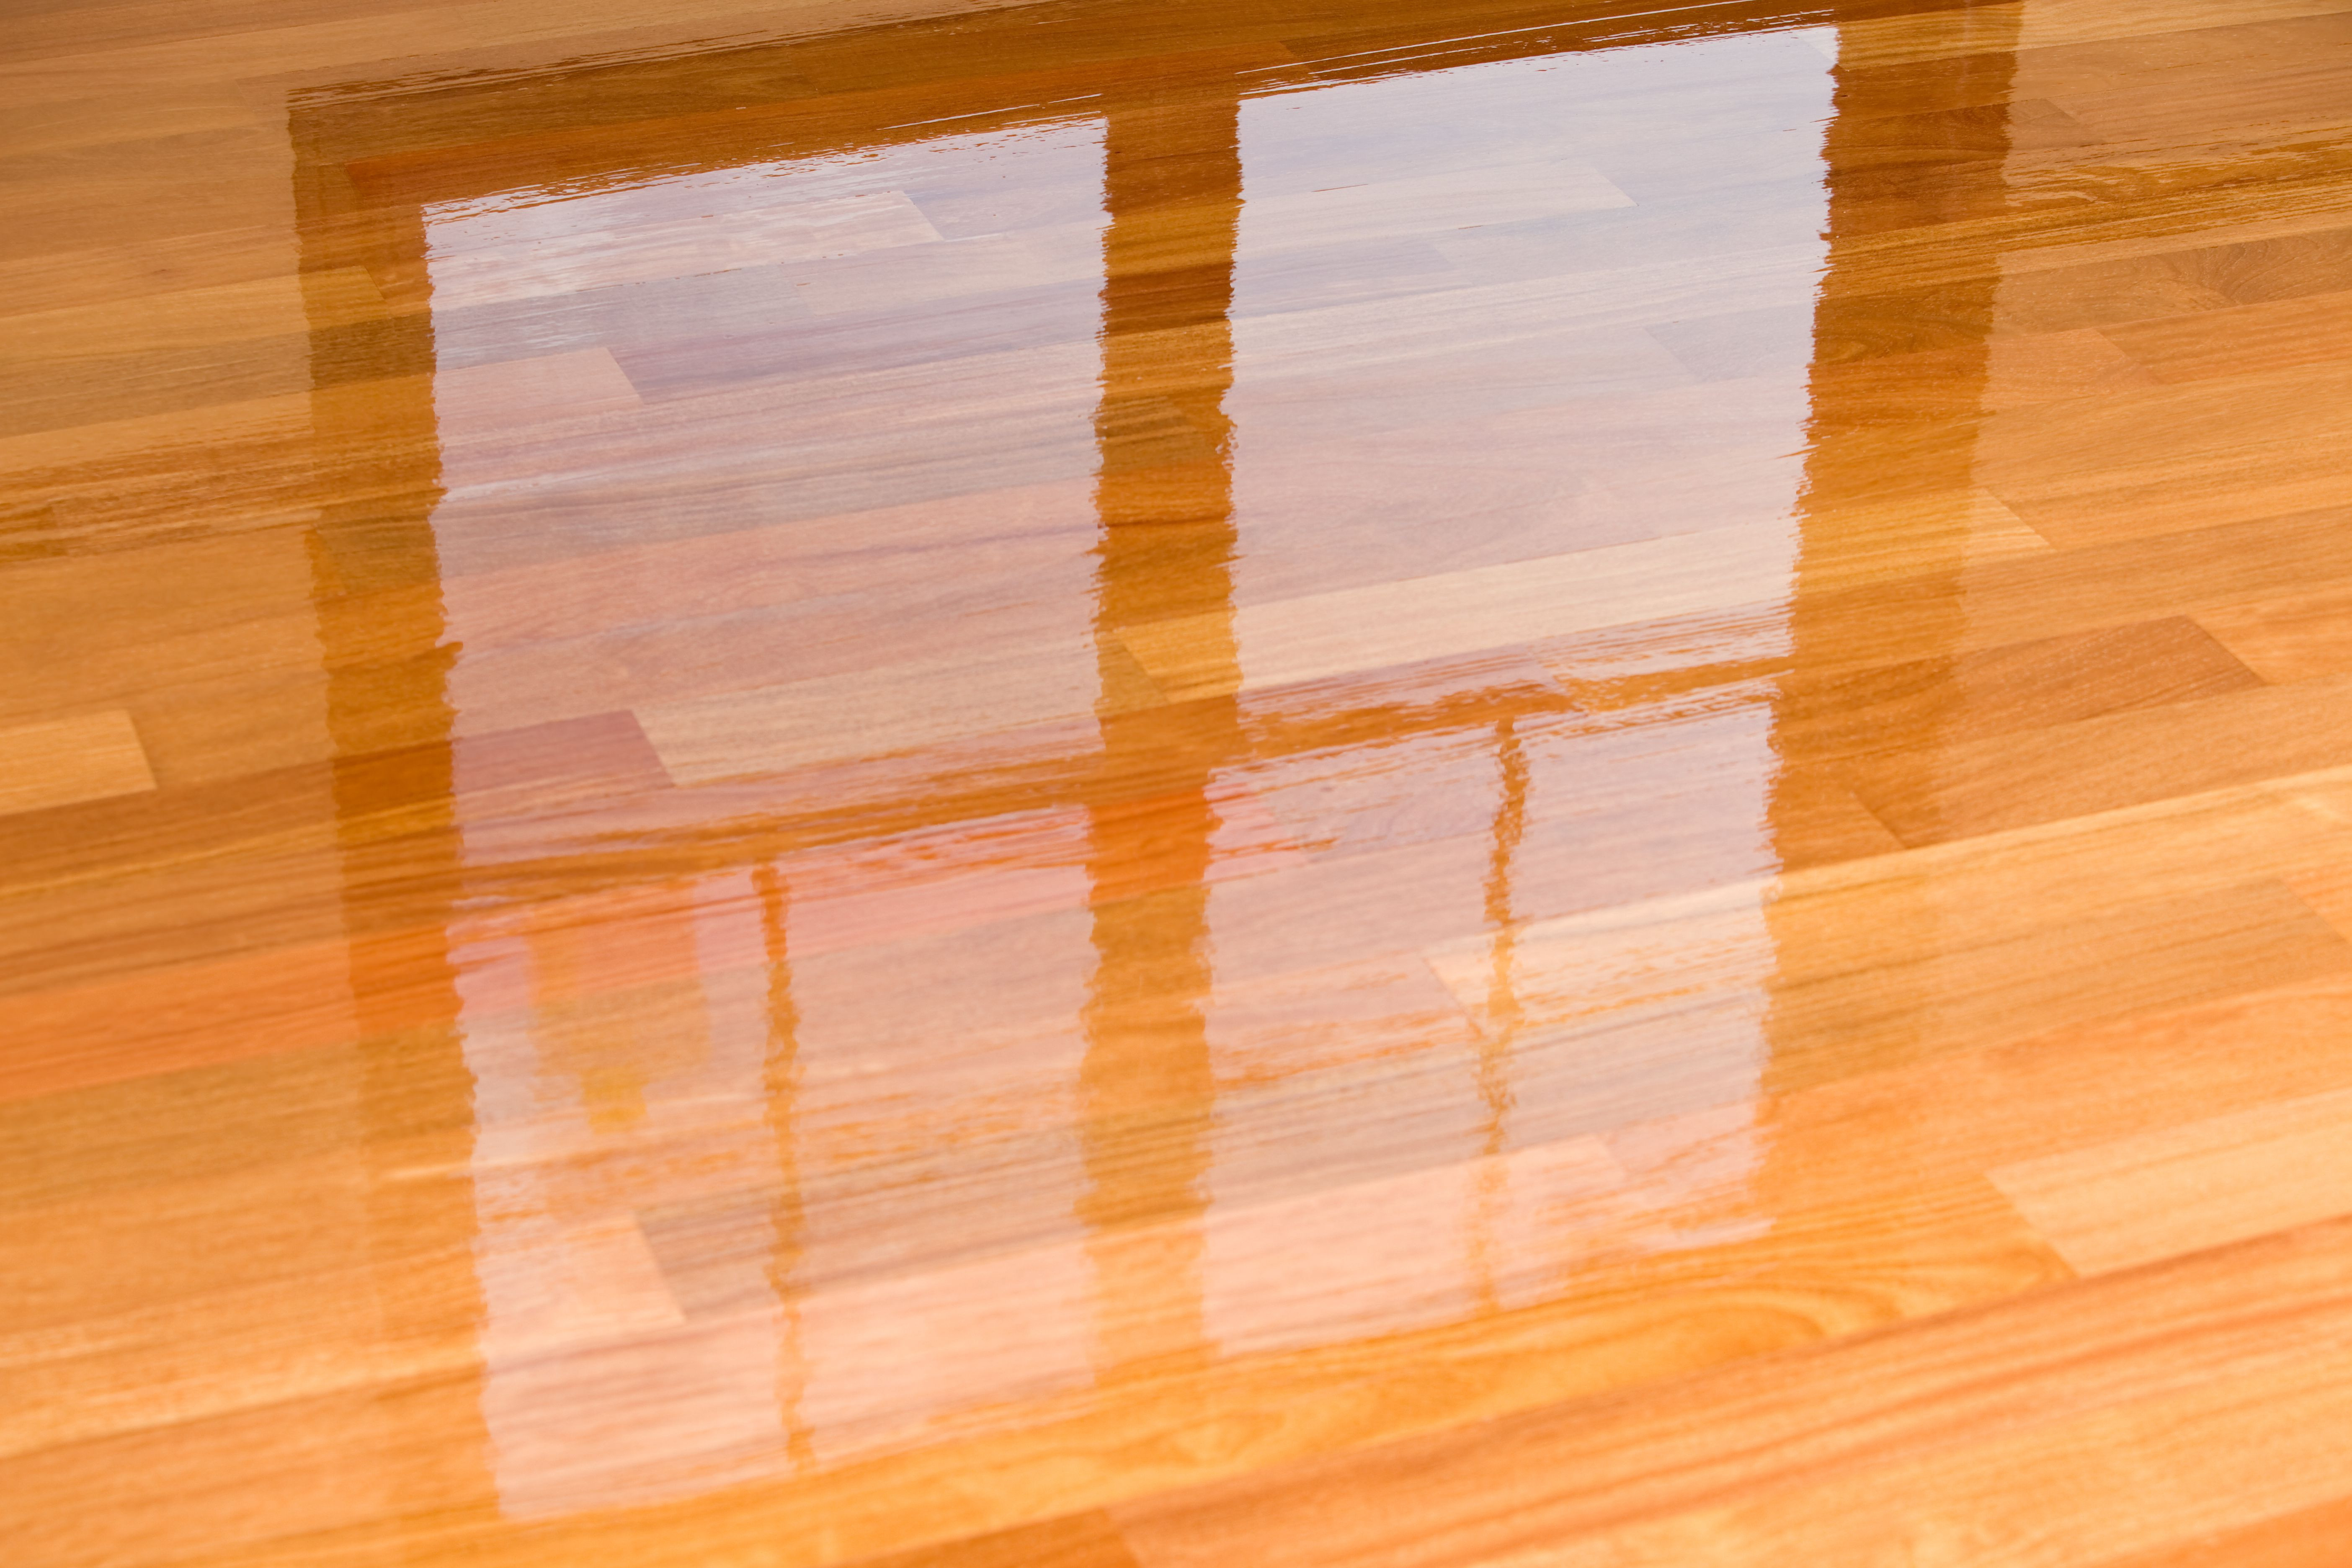 hardwood flooring sale in mississauga of the wood maker page 4 wood wallpaper for guide to laminate flooring water and damage repair ideas of pergo wood flooring laminate flooring laminate wood floors